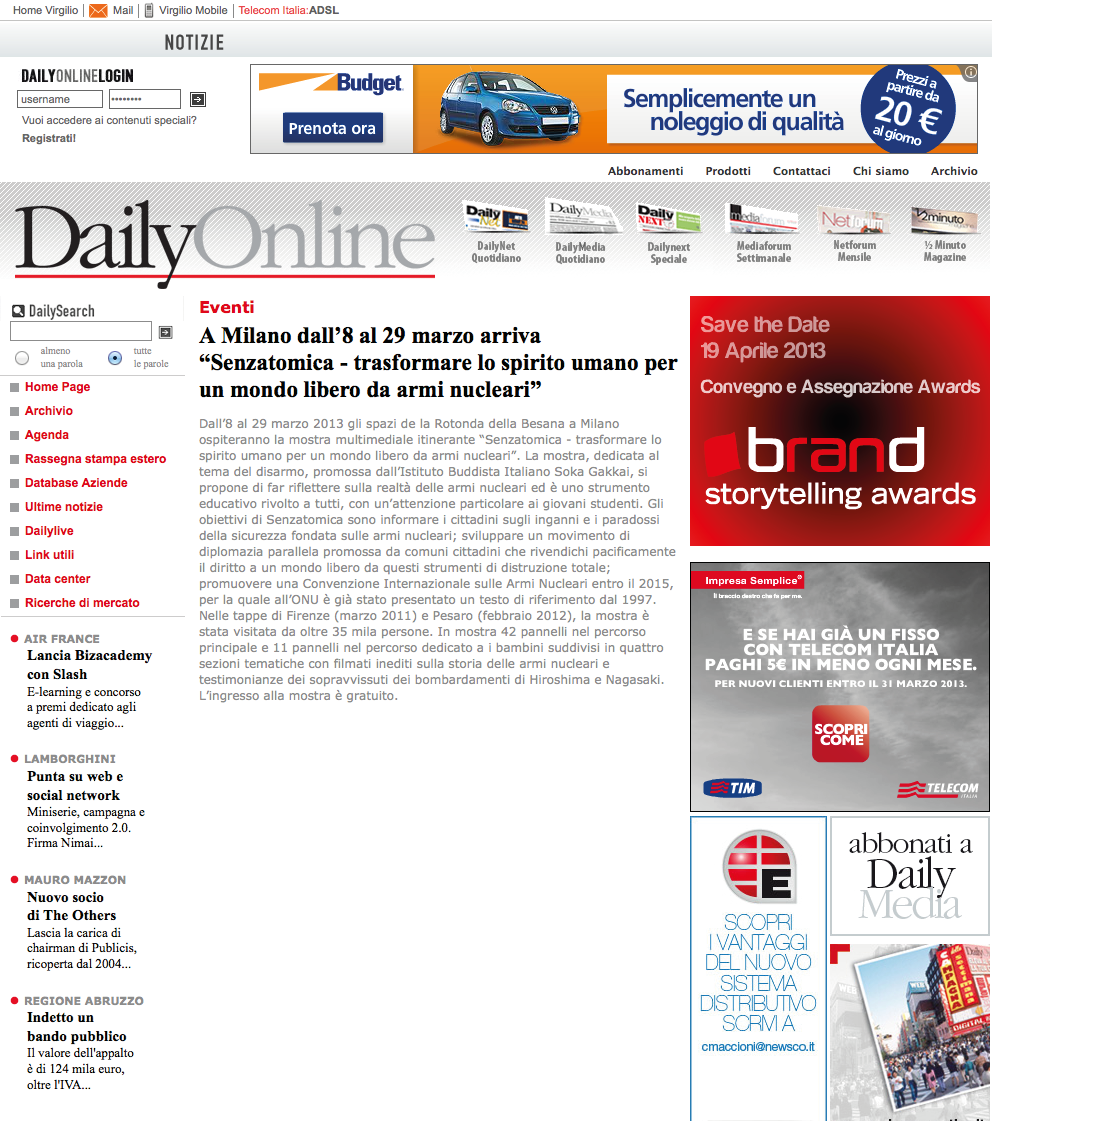 2013-03-07 Daily Online